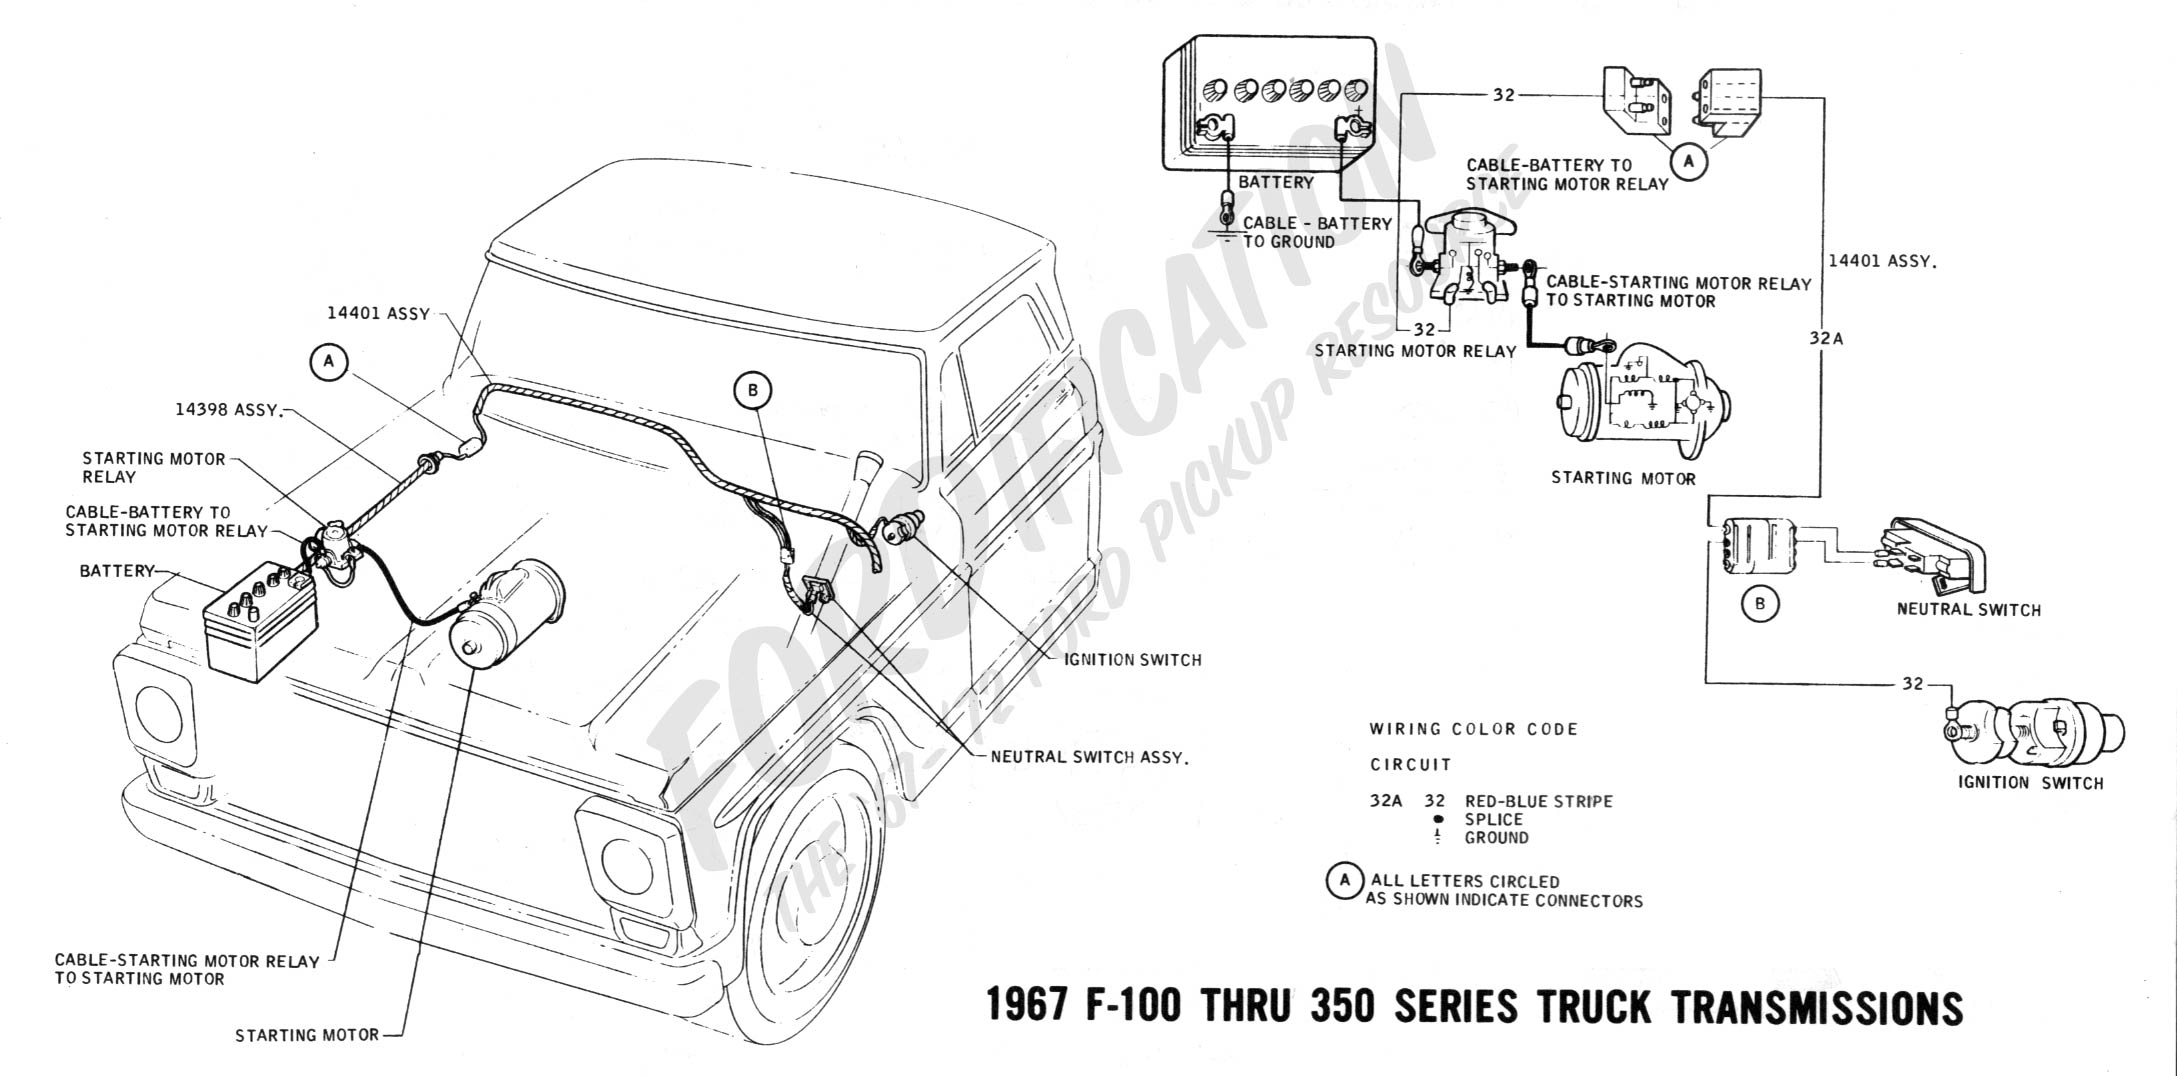 02 F250 Diesel Starter Wiring Diagram Library 4x4 Ford Truck Technical Drawings And Schematics Section H Diagrams 03